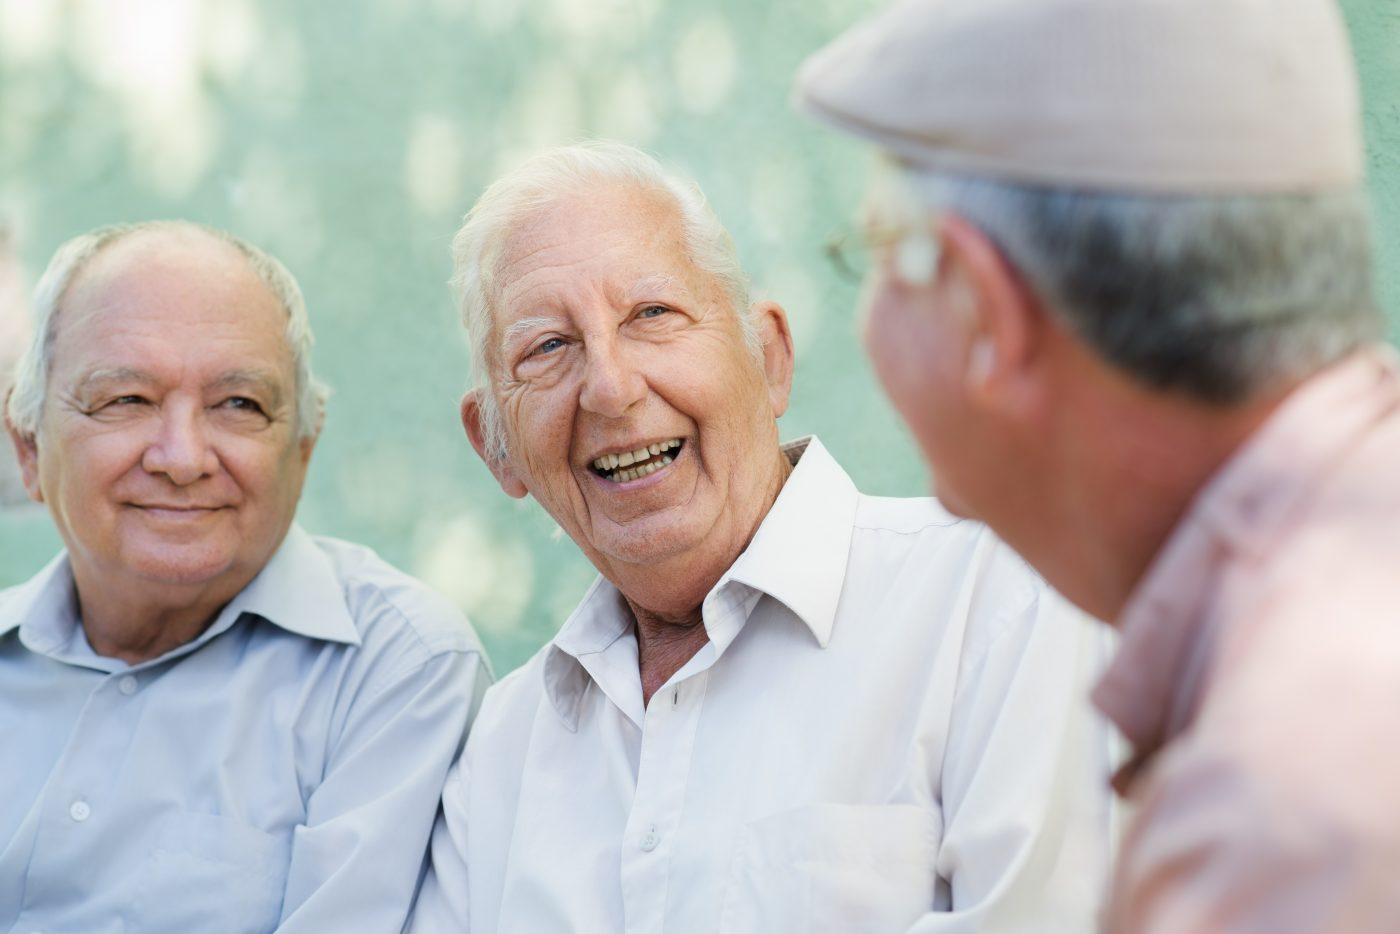 Conservative Disease Management as a Viable Choice for Elderly Patients with Low-Risk Prostate Cancer